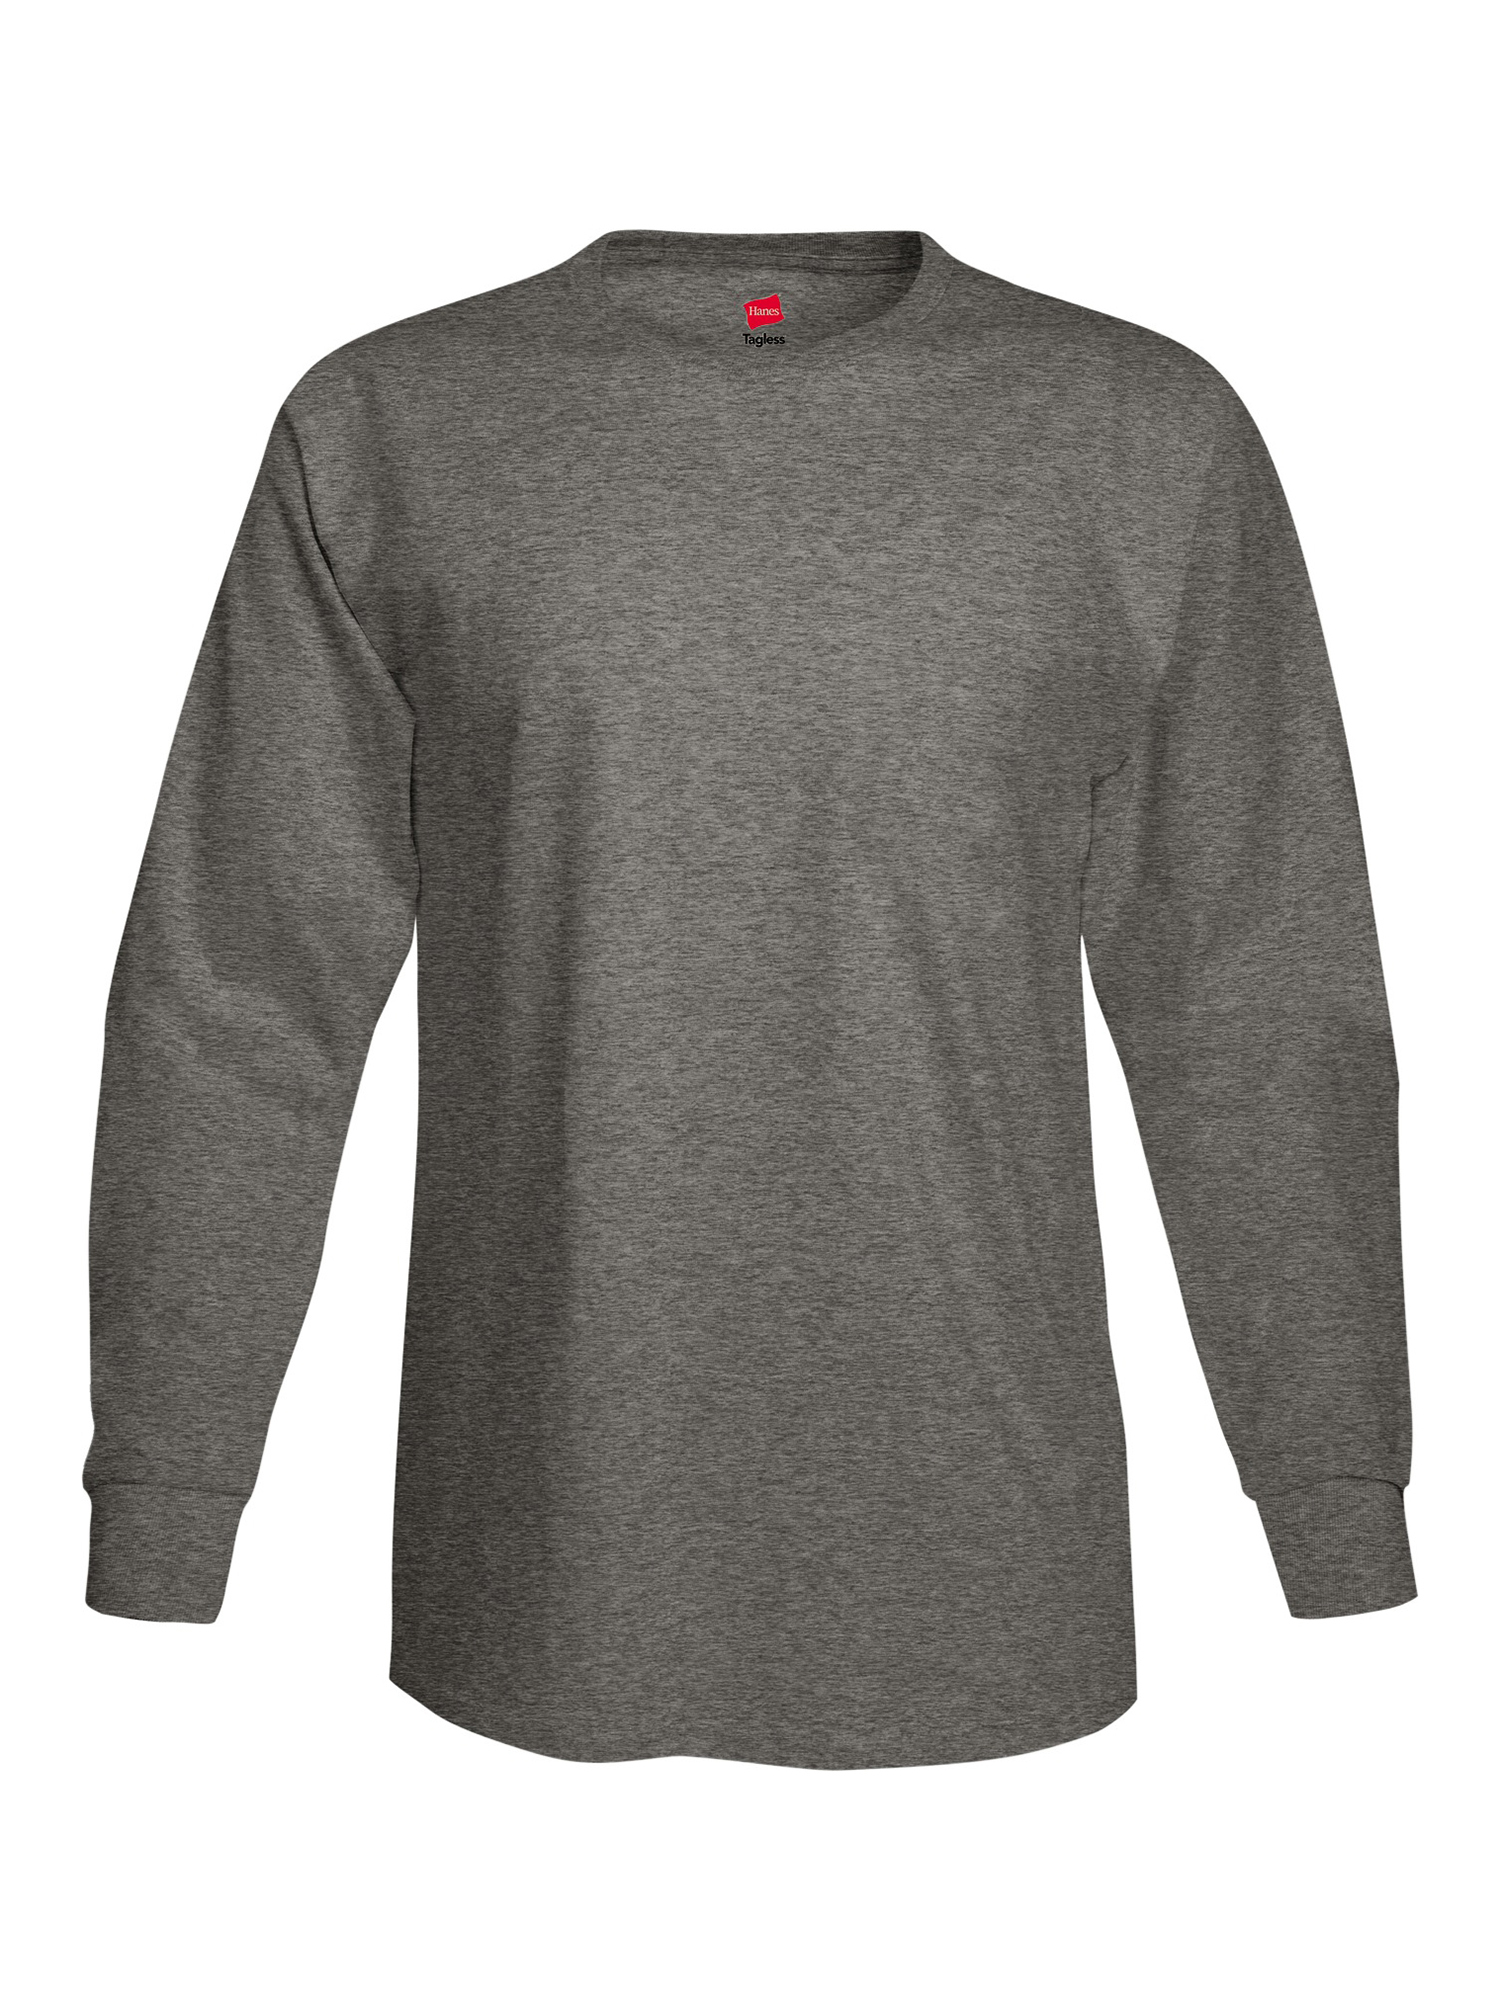 8ce409517ccee Hanes - Mens Tagless Cotton Crew Neck Long-Sleeve Tshirt - Walmart.com